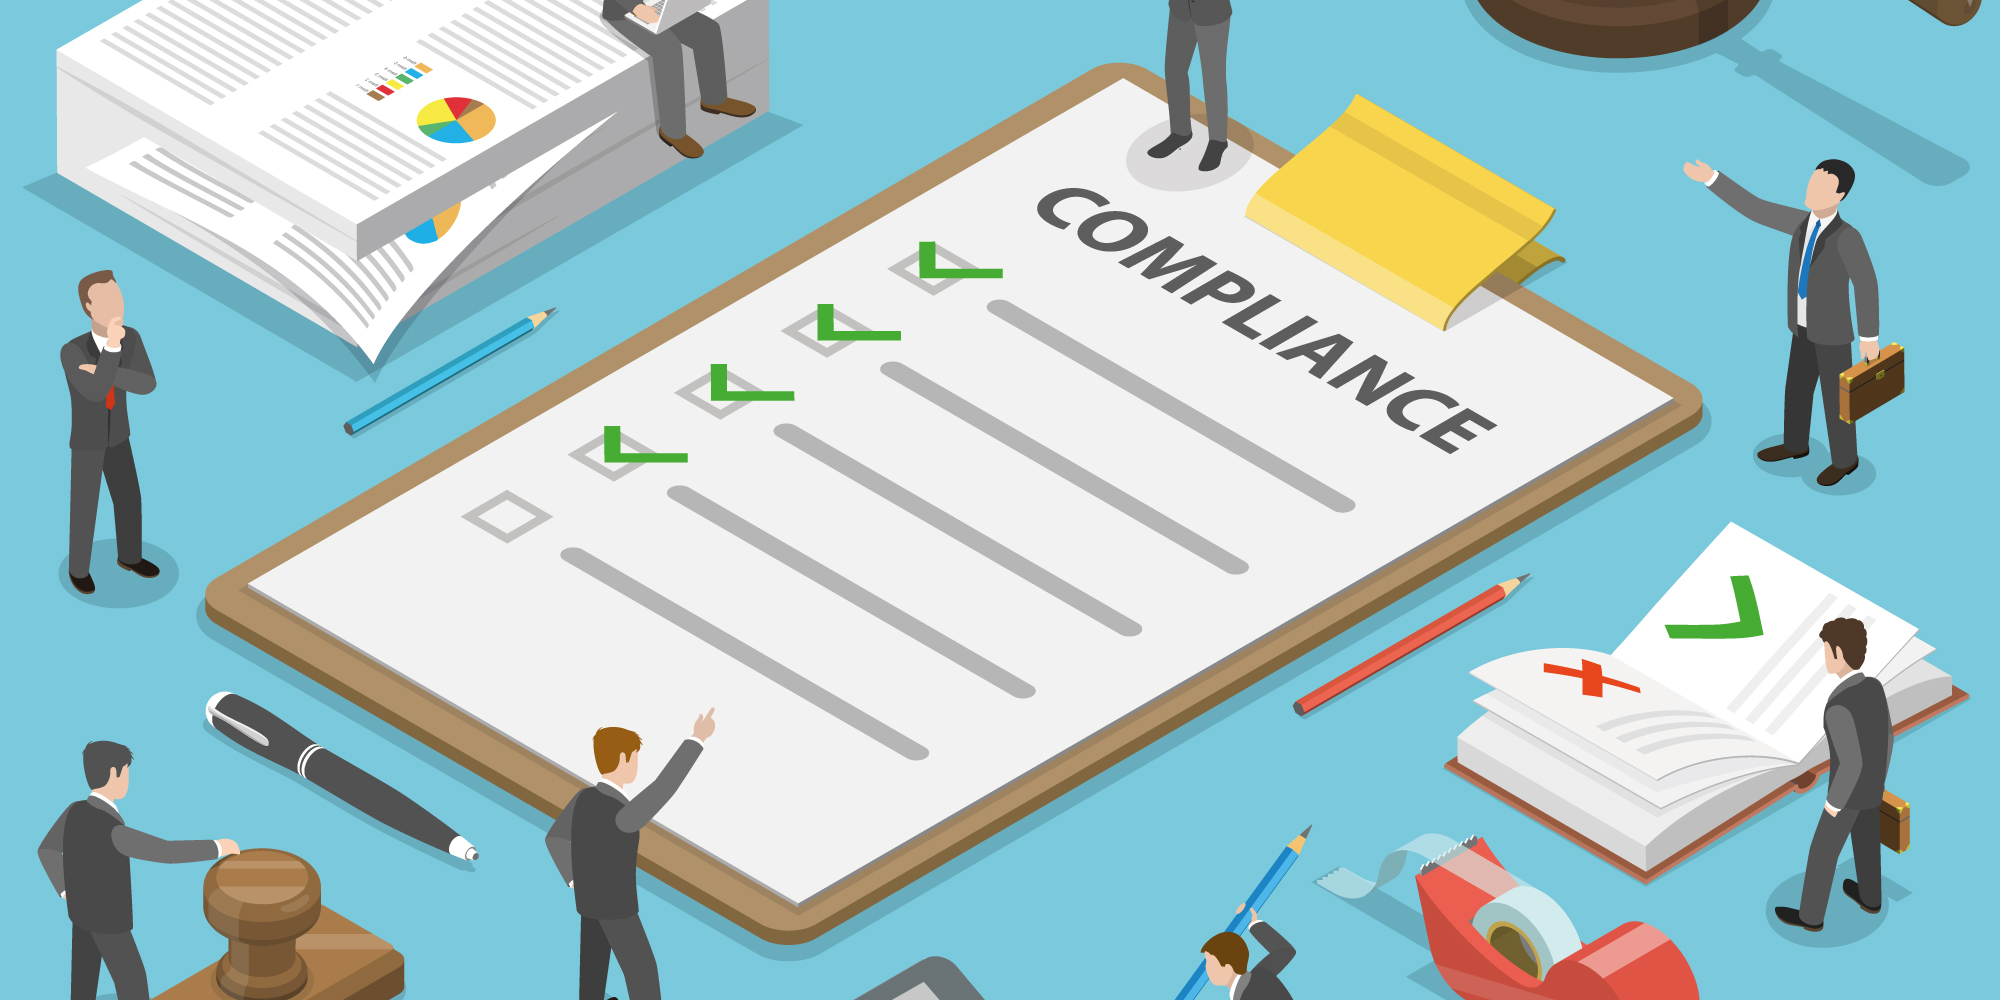 compliance-in-logistics-asset-to-improve-processes